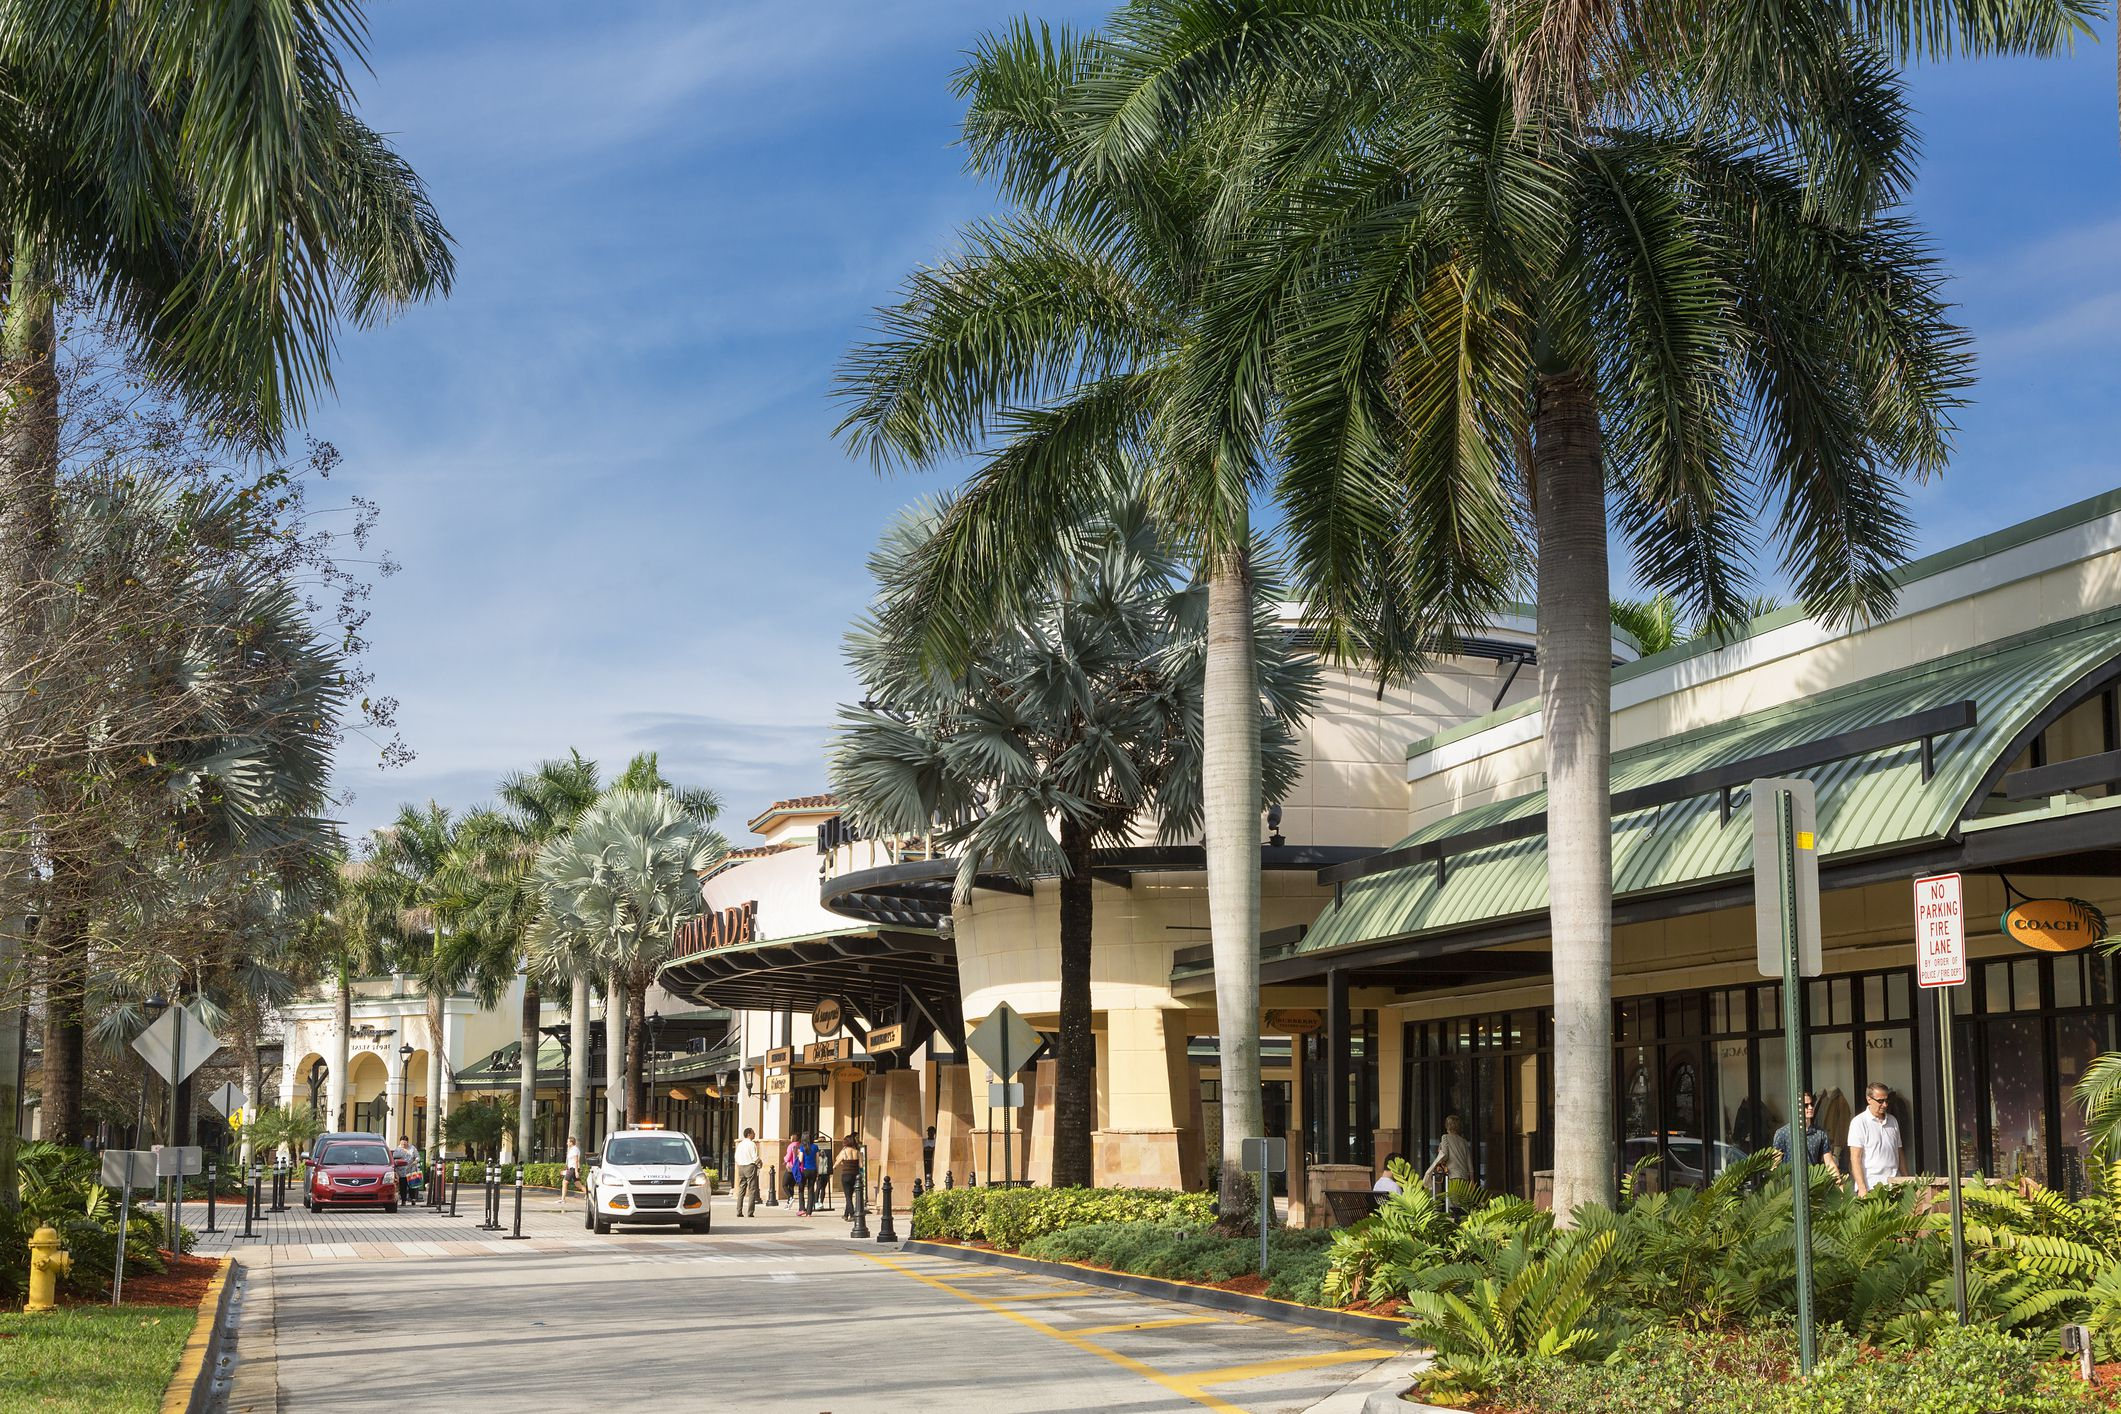 5 Best Miami Outlet Malls And Factory Stores